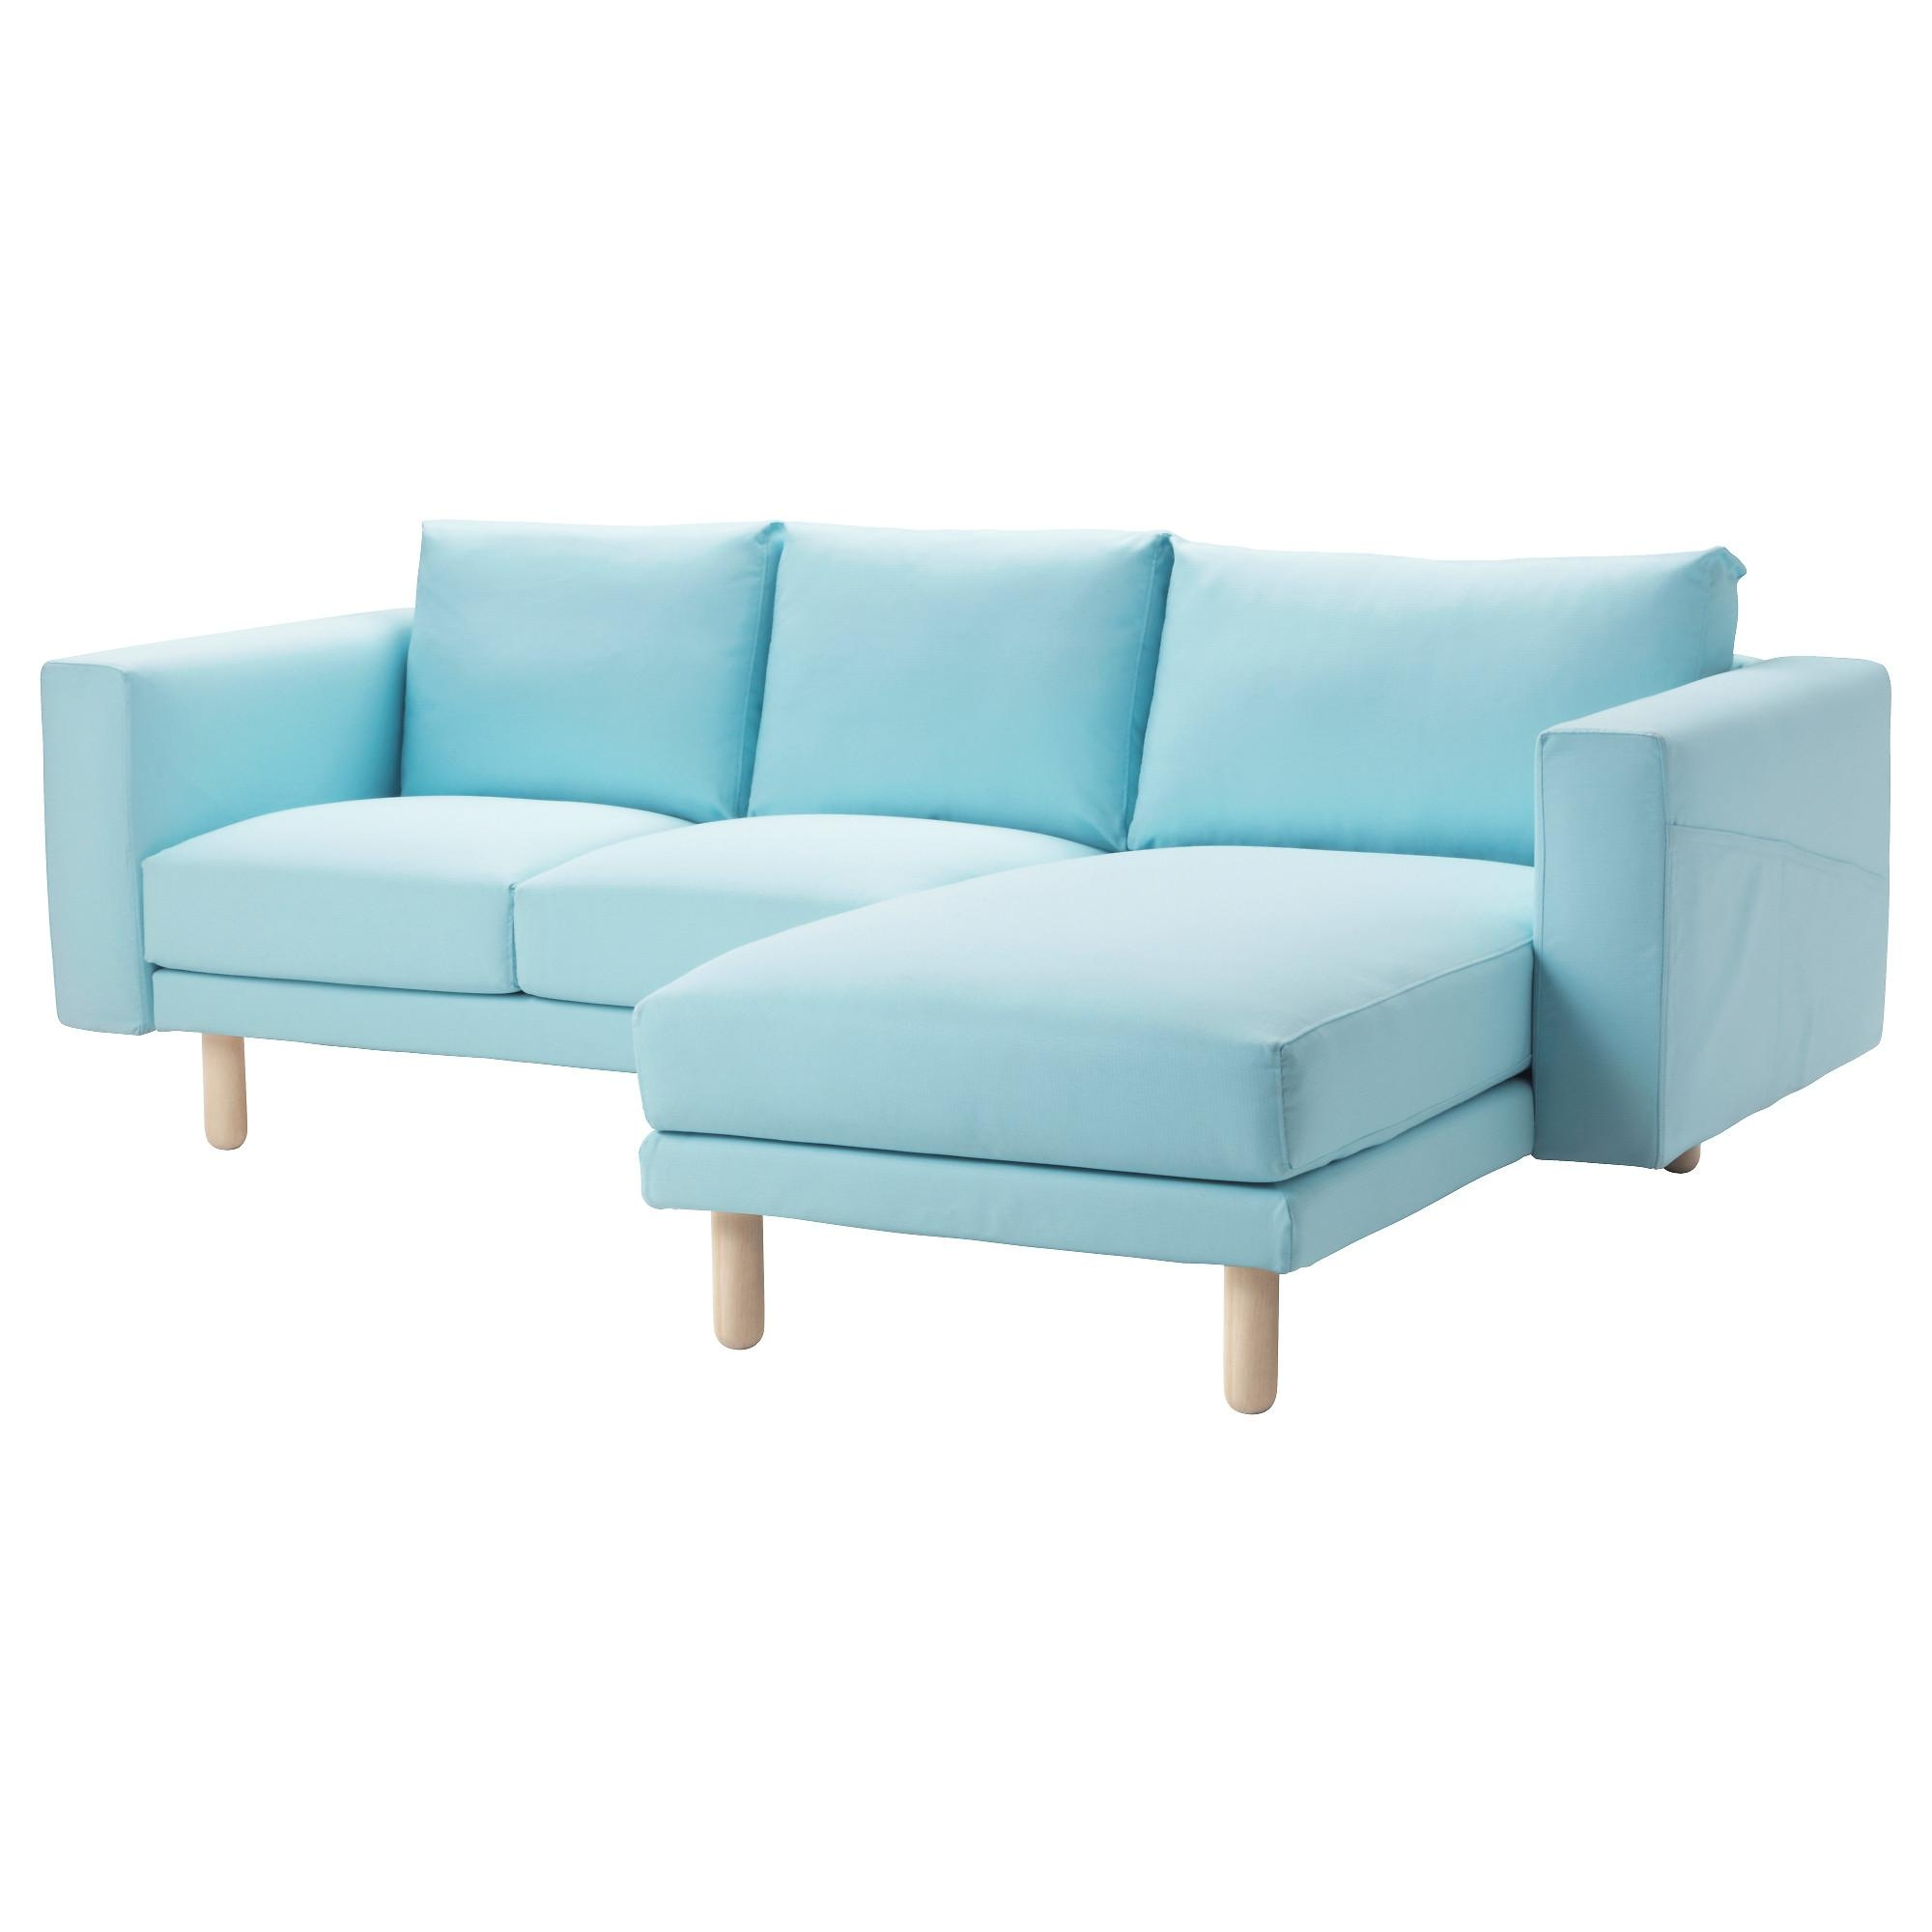 Furniture: Classy Ikea Couch Covers Design For Stylish Living Room Inside Teal Sofa Slipcovers (View 20 of 20)